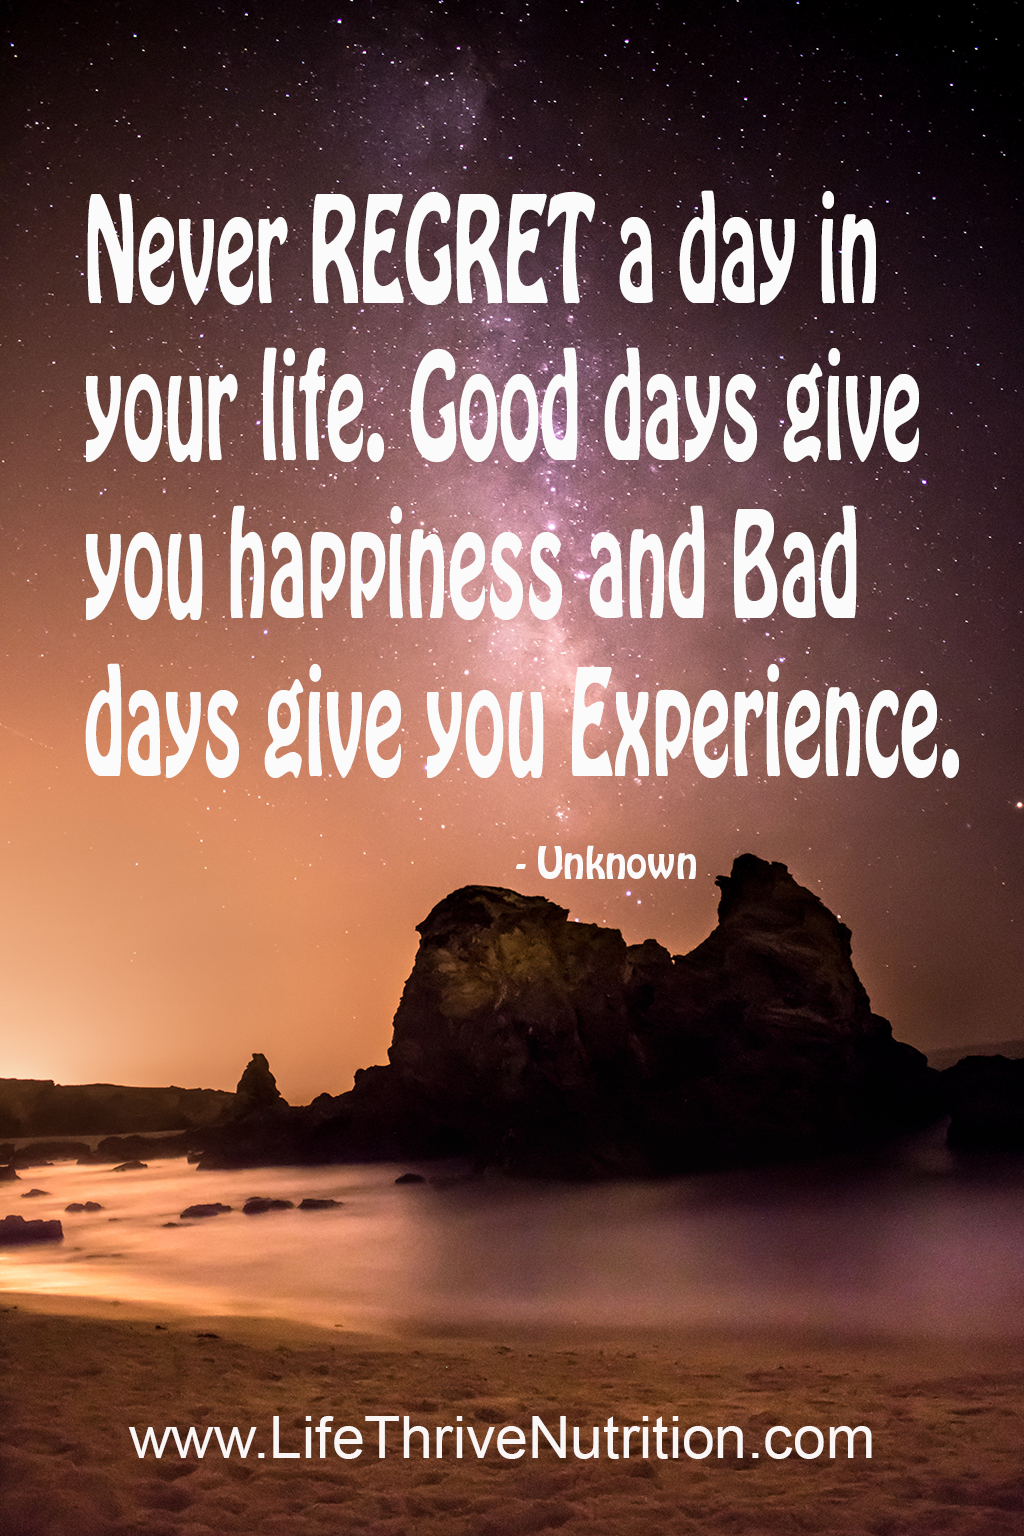 Never Regret a day in your life. Good days give you